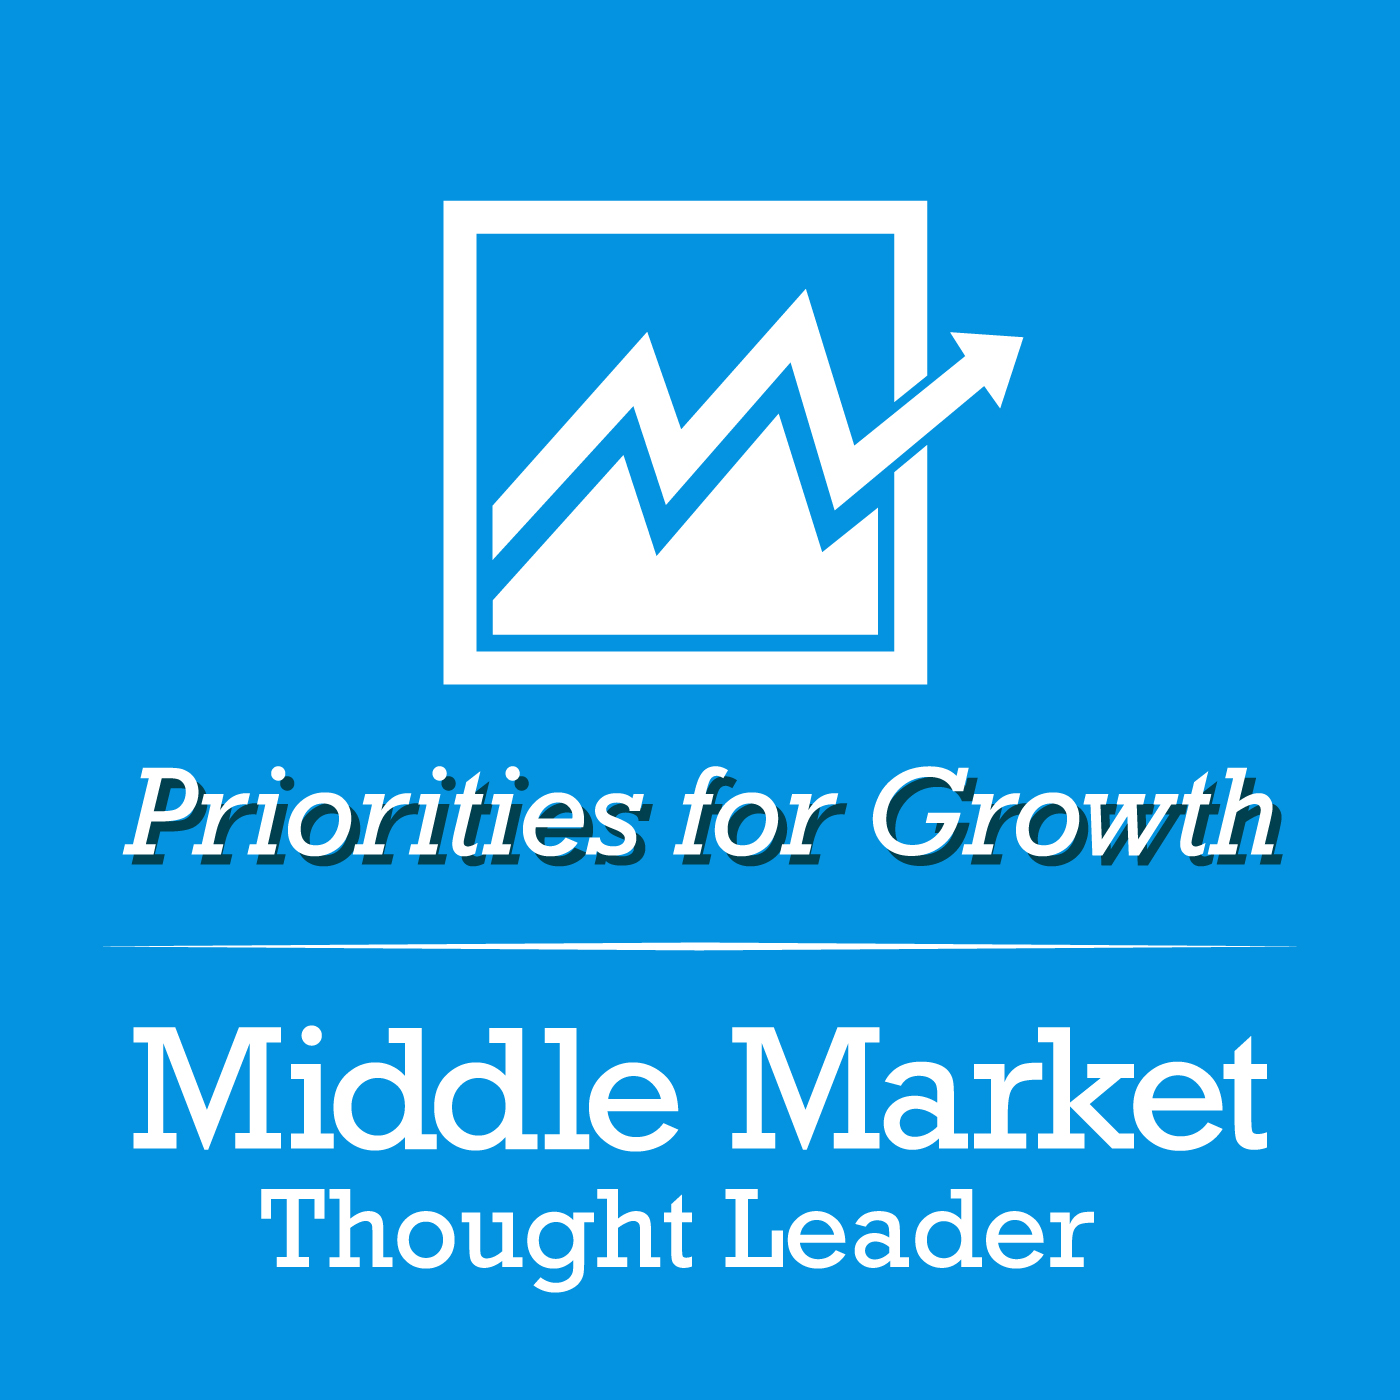 Middle Market Thought Leader | Priorities for Growth